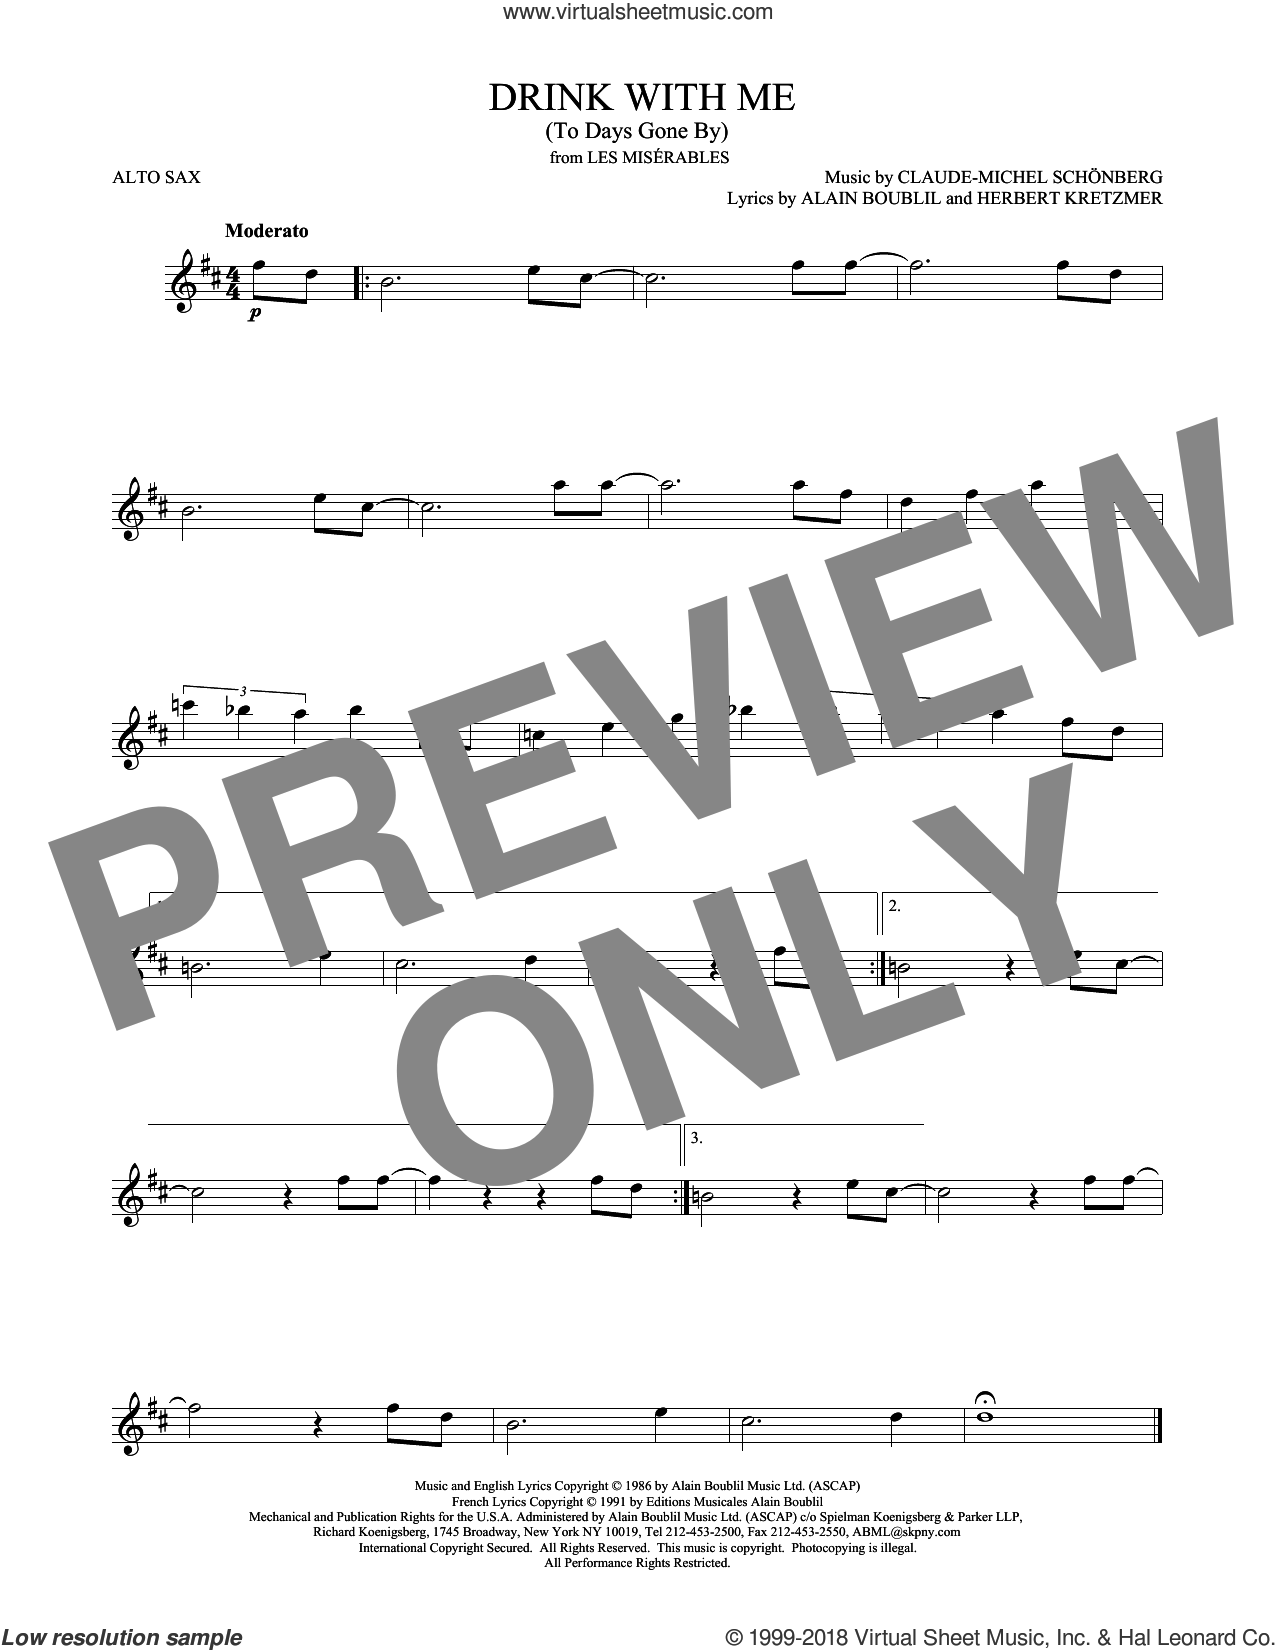 Drink With Me (To Days Gone By) sheet music for alto saxophone solo by Alain Boublil, Claude-Michel Schonberg and Herbert Kretzmer, intermediate skill level